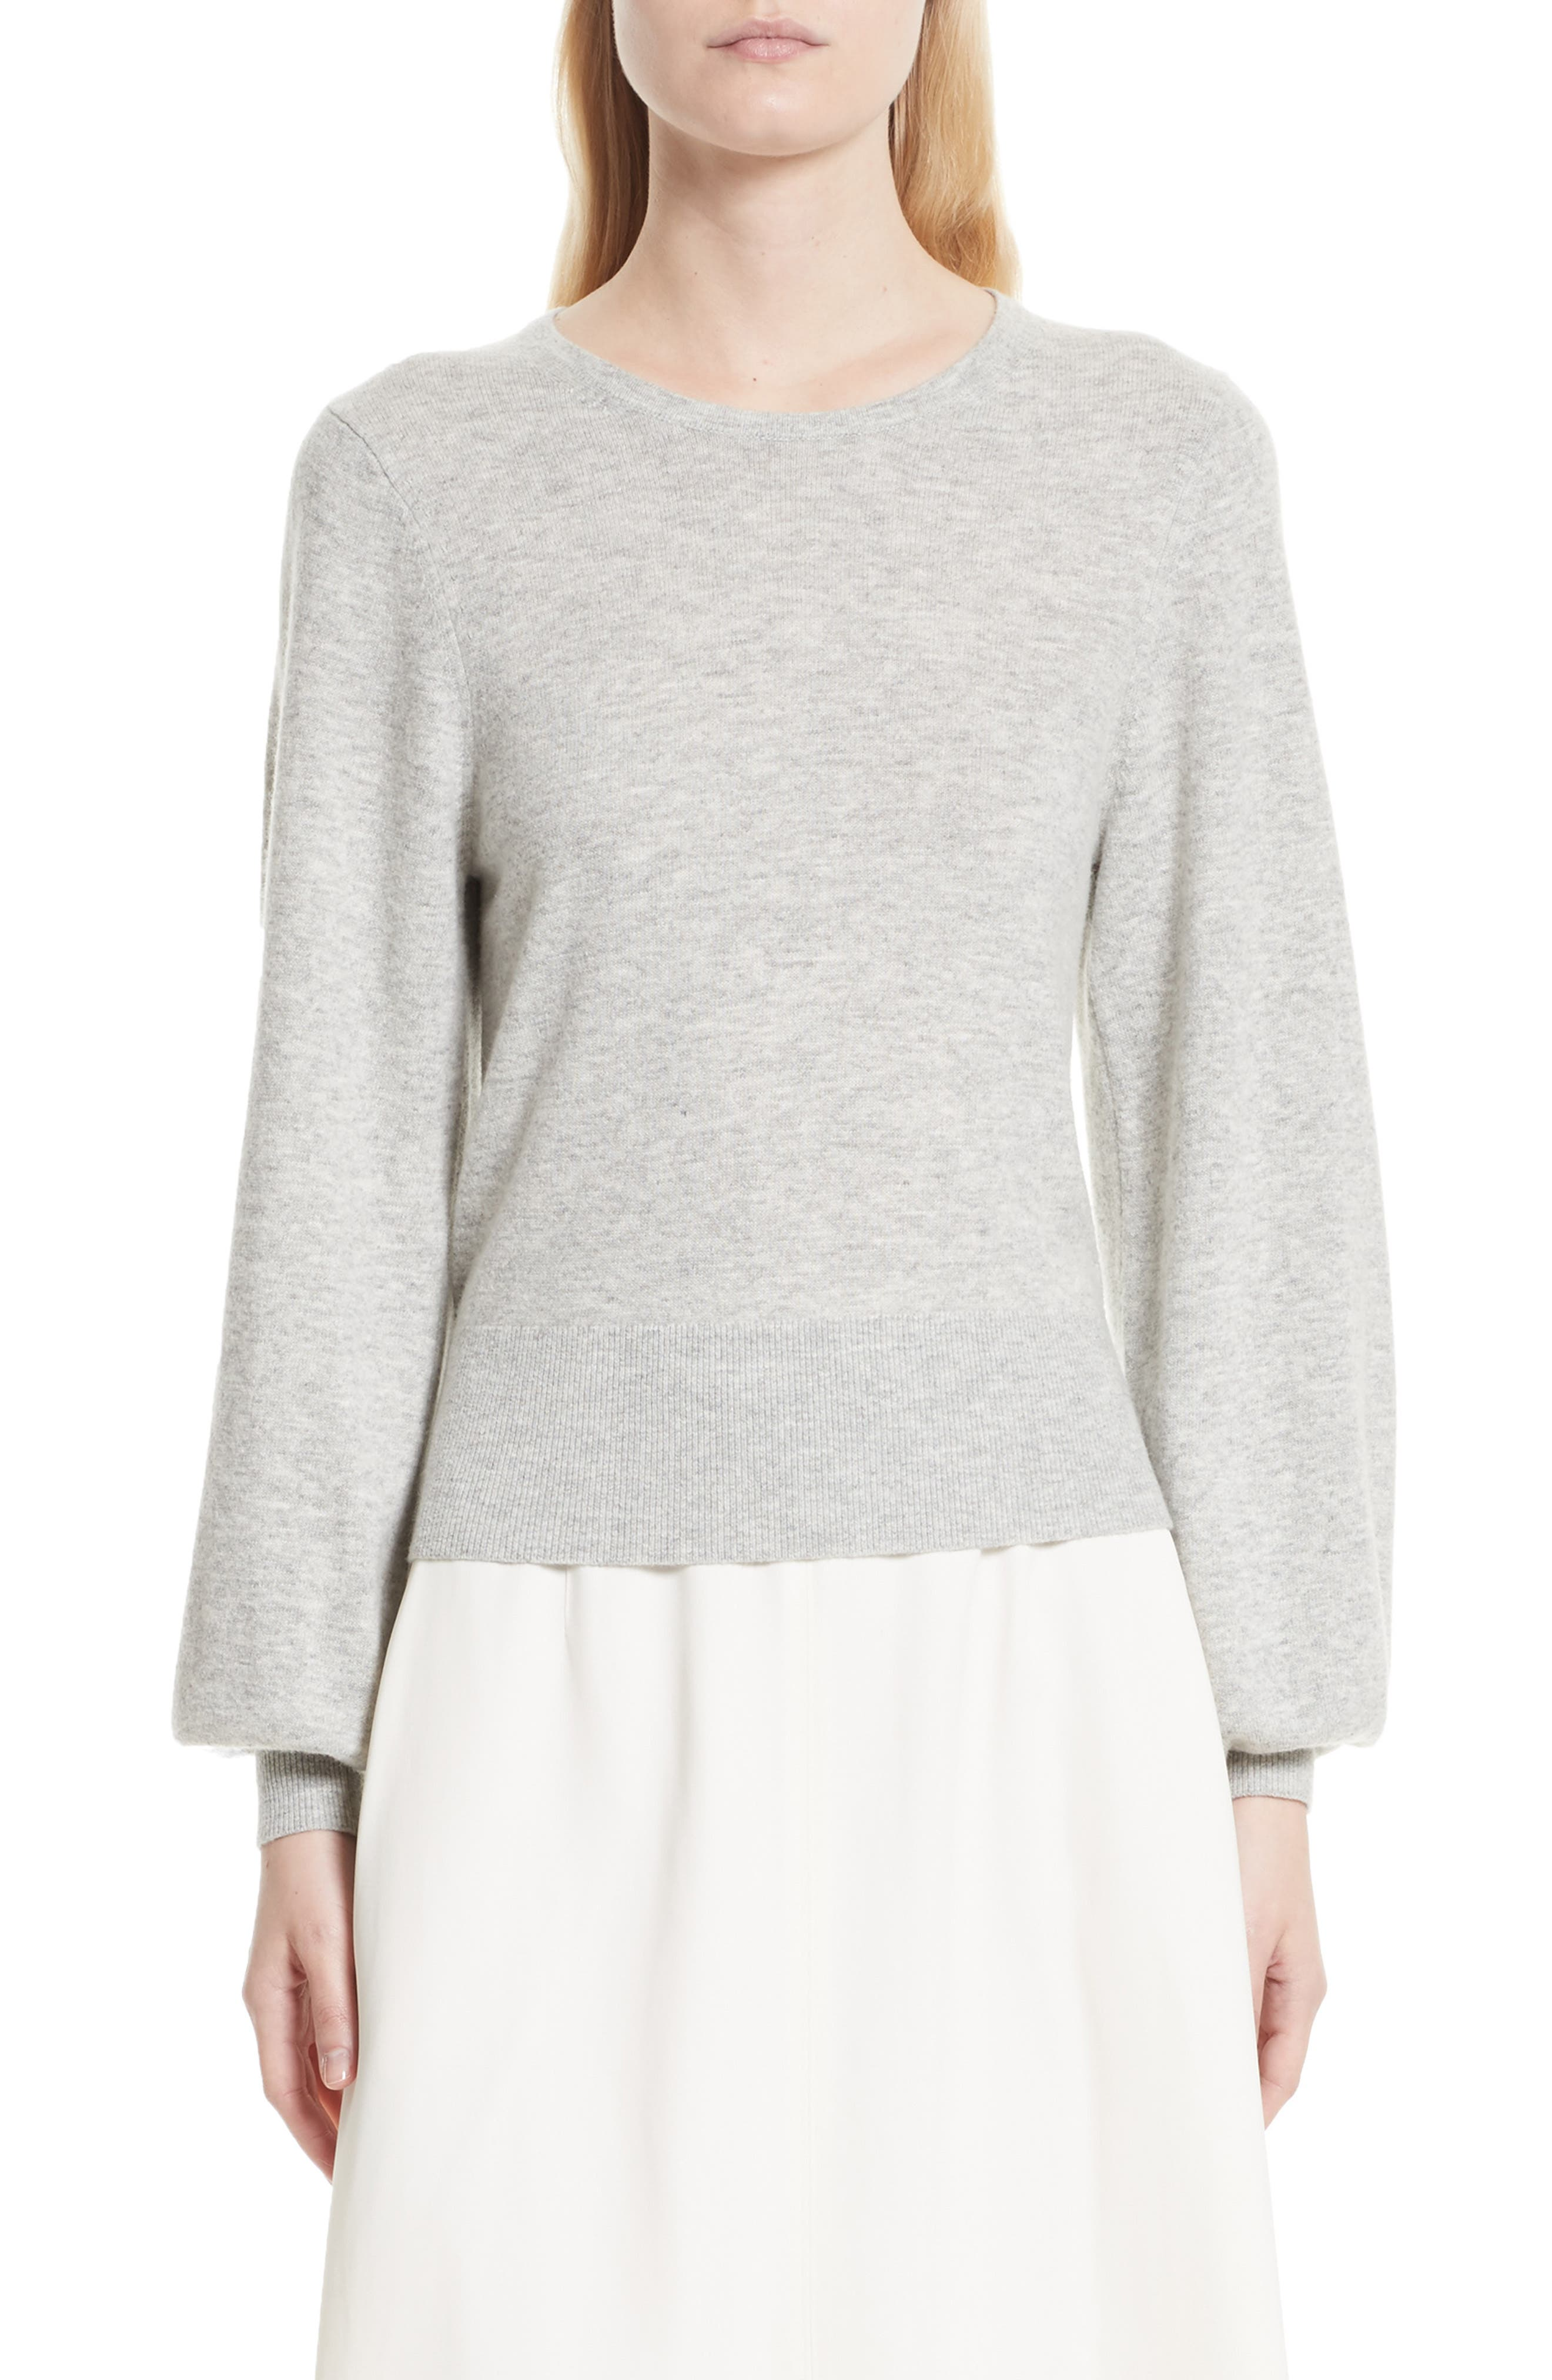 Bretta Sweater,                         Main,                         color, Heather Grey